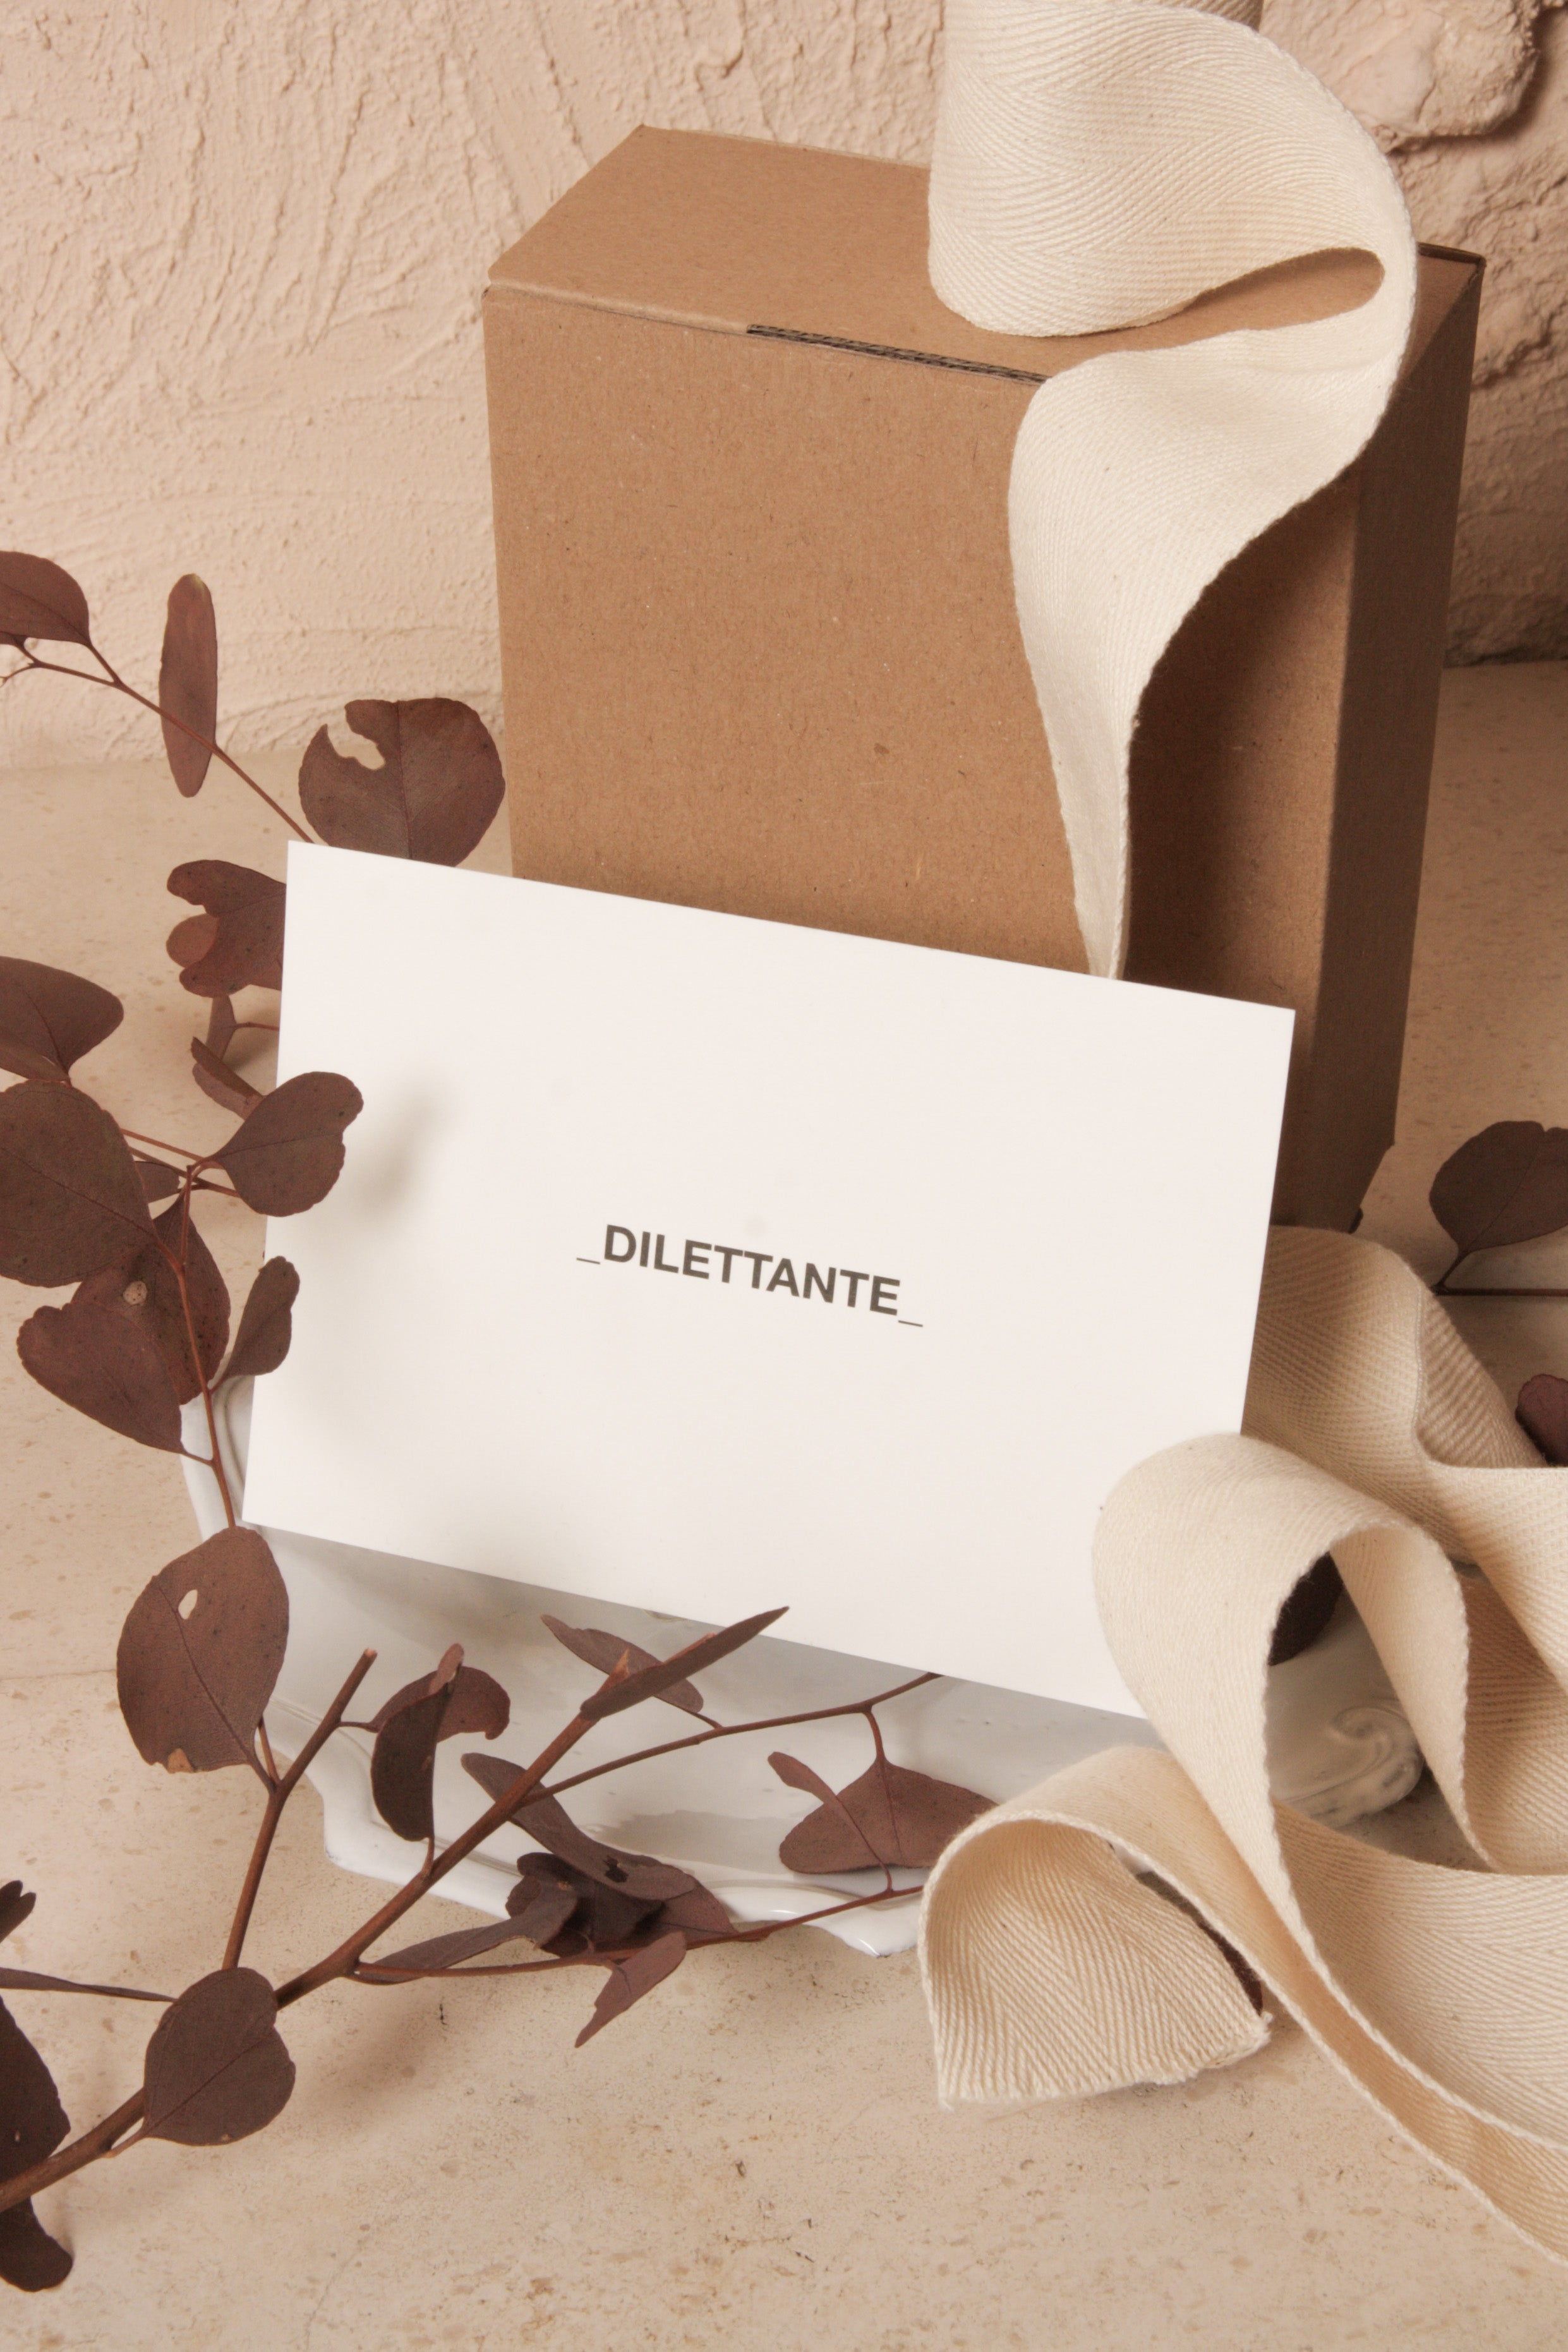 Dilettante Gift Certificate